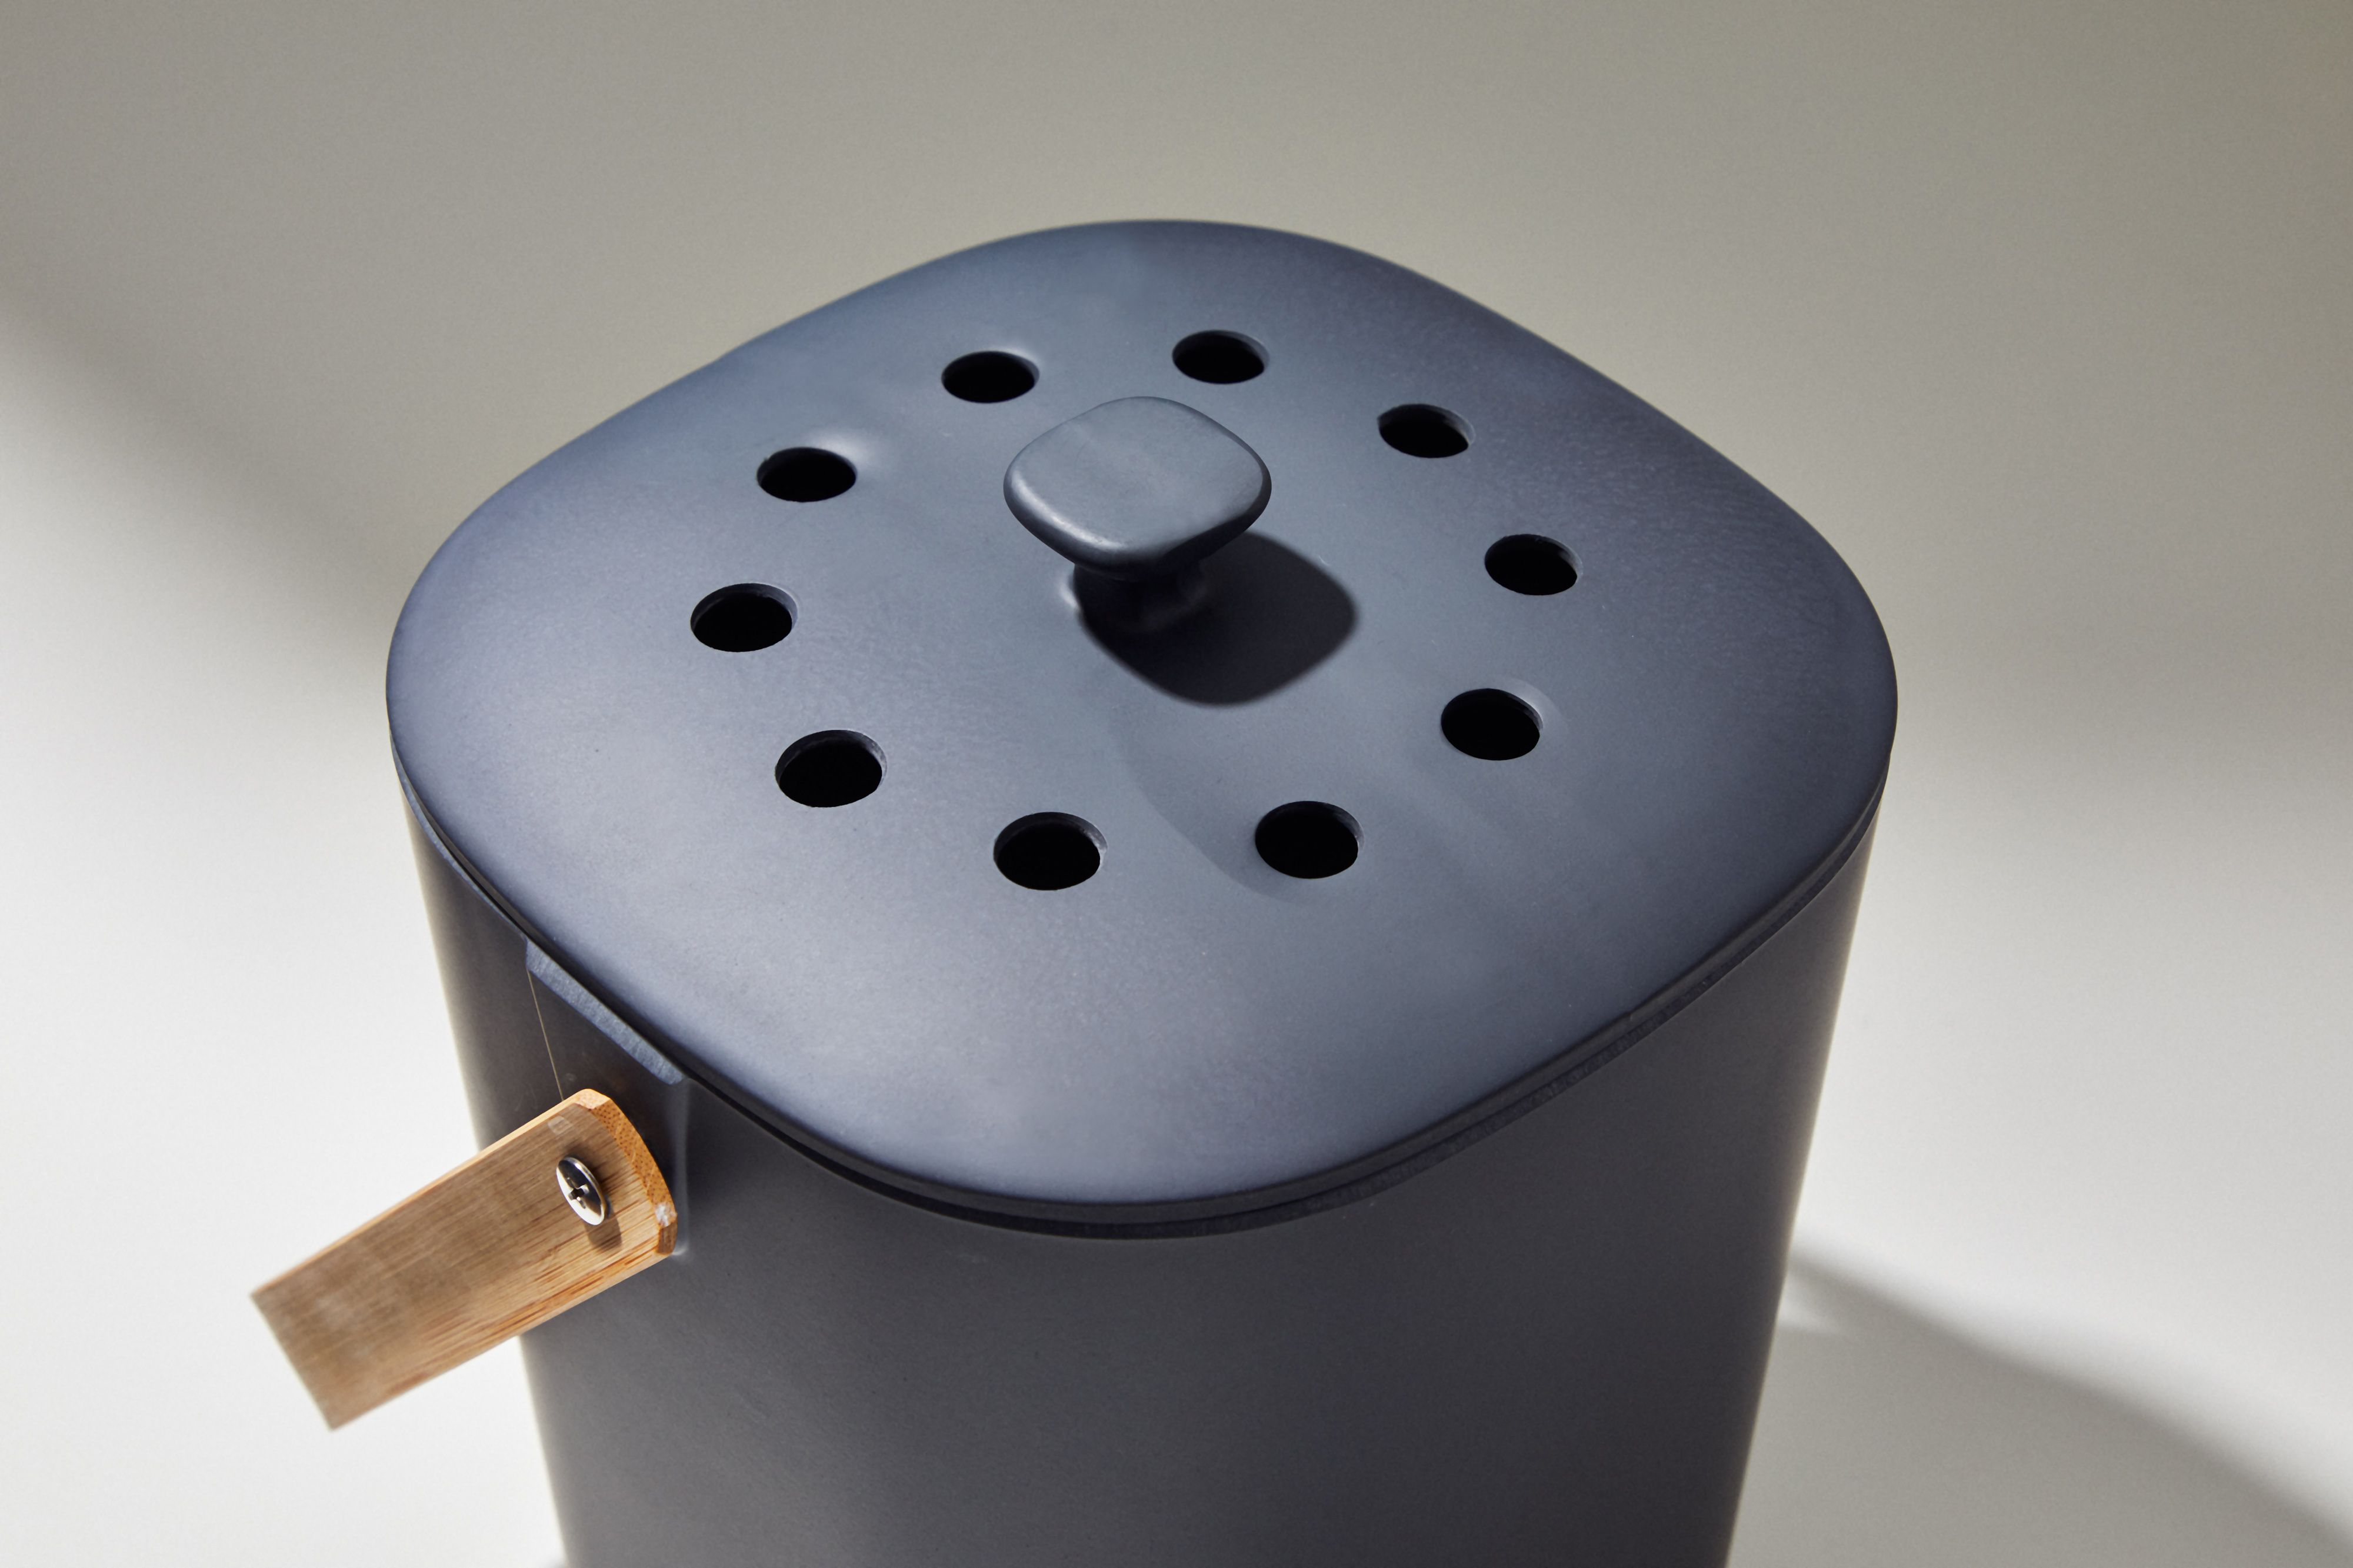 The Composter That Looks Like Anything But a Composter